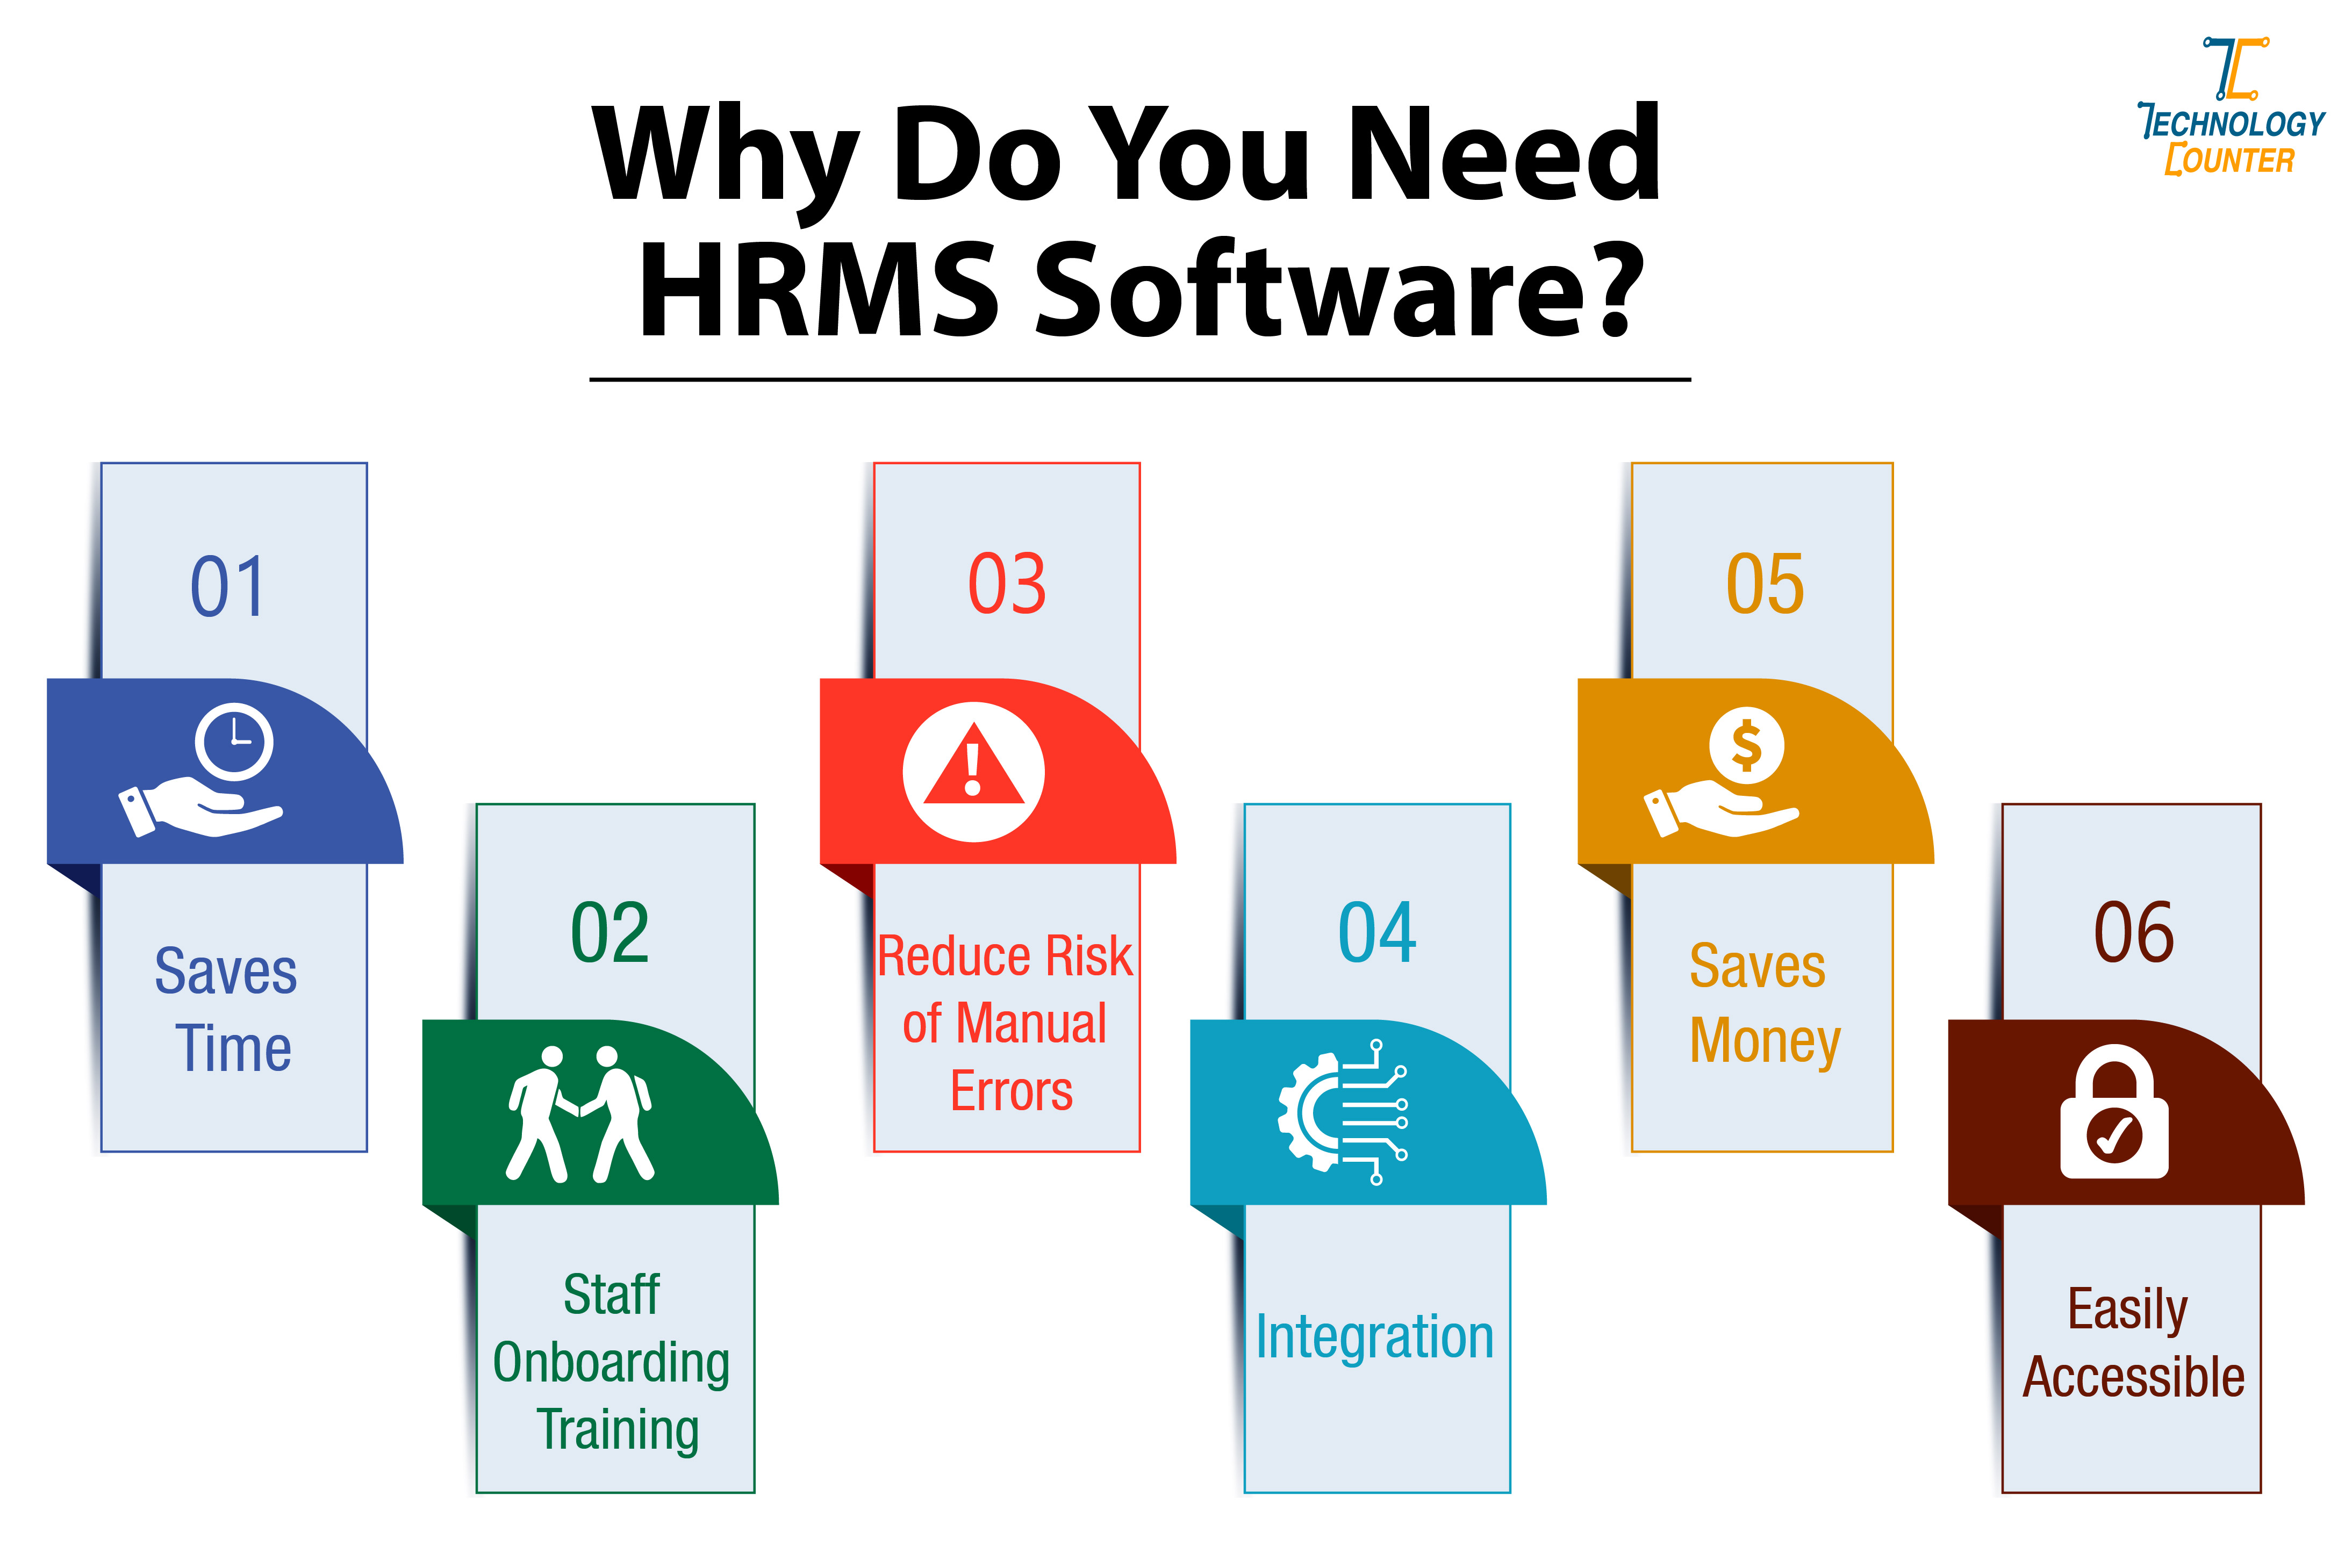 Need of HRMS Software